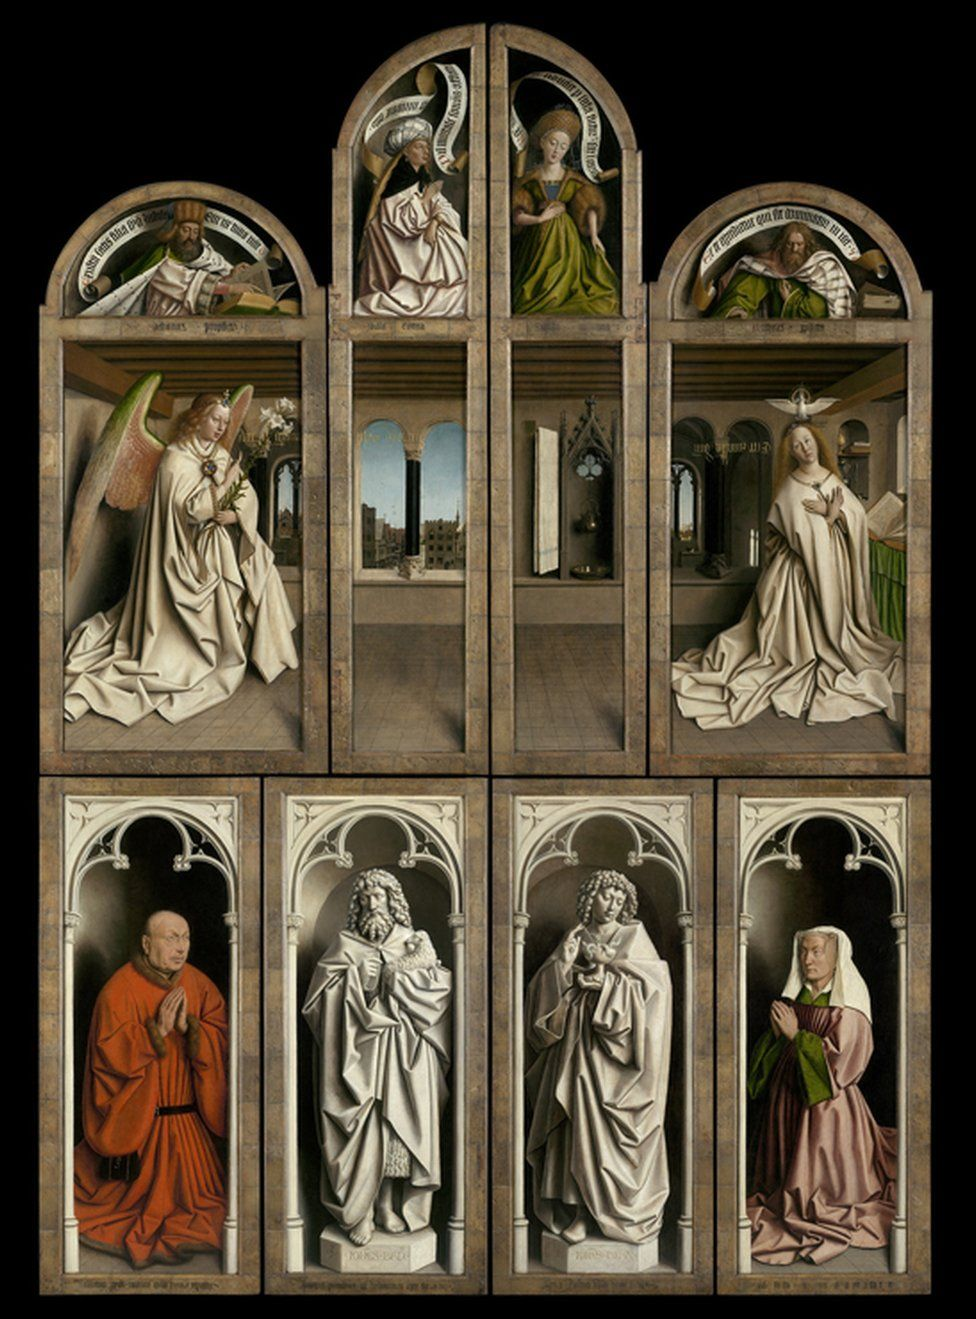 The Adoration of the Mystic Lamb, 1432 (better known as the Ghent Altarpiece), which was painted by Jan and Hubert van Eyck, is considered to be one of the world's most significant works of art